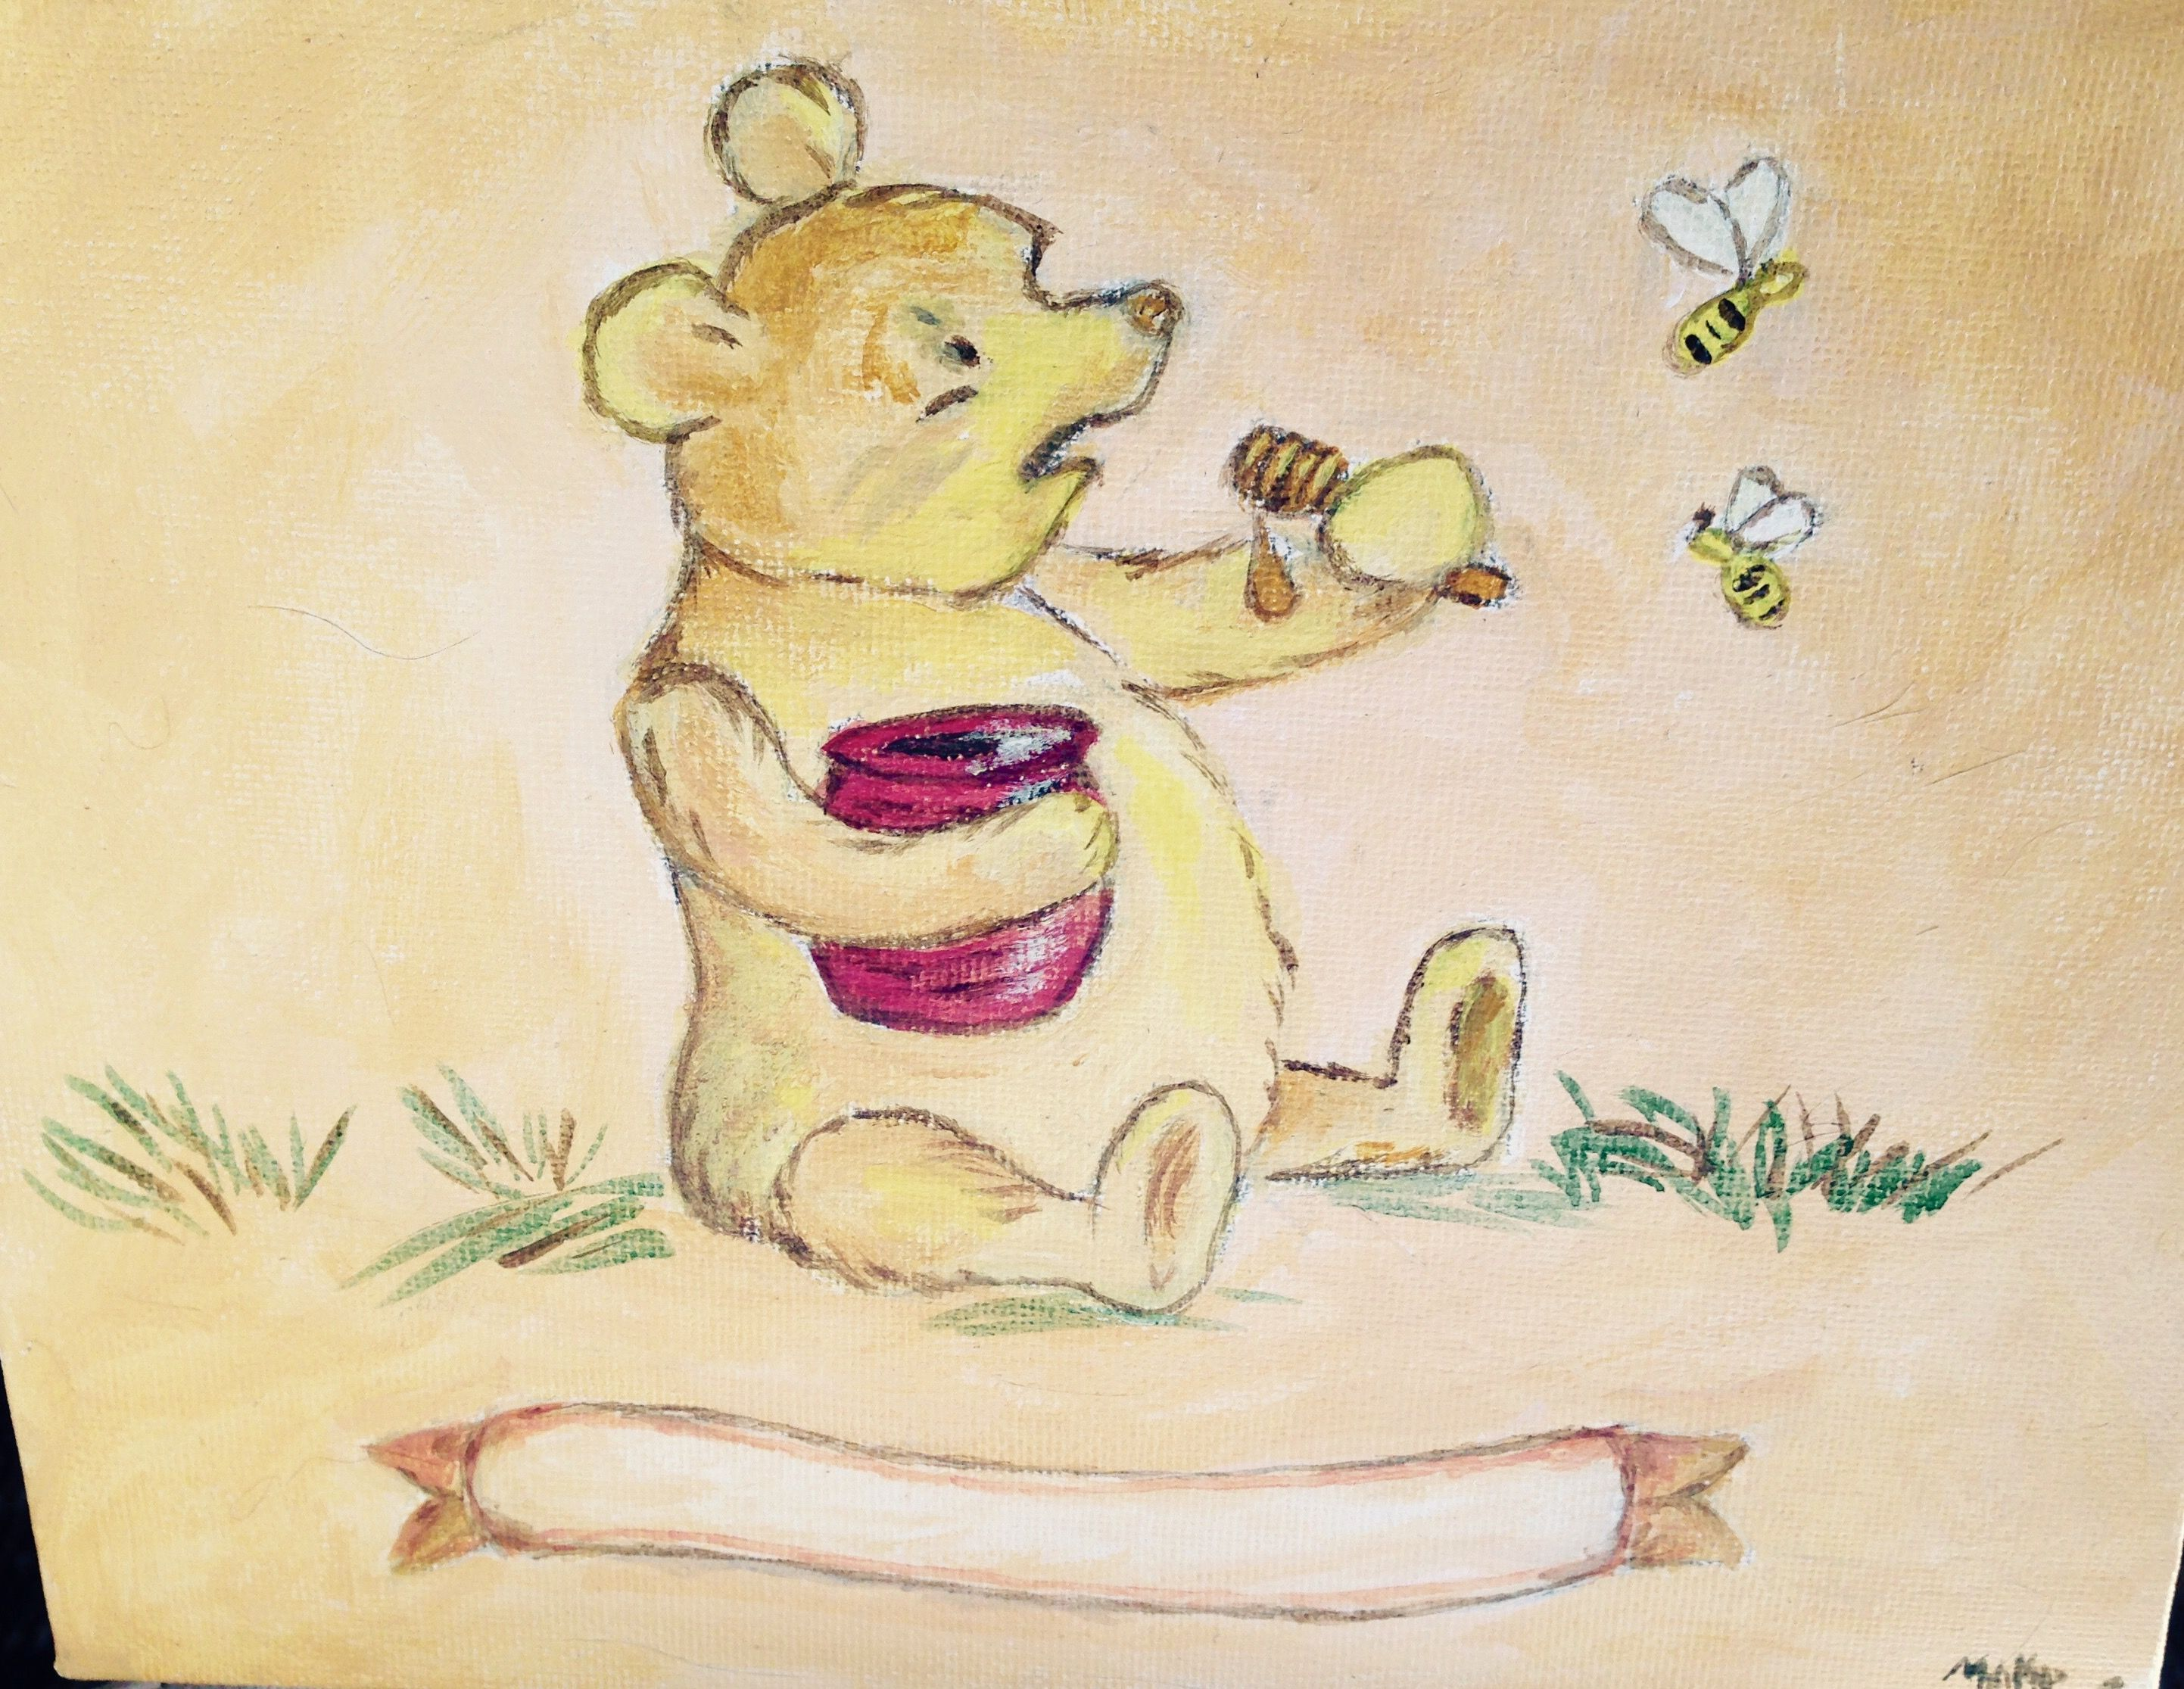 """Pooh"" name to be added, in acrylic by MAKP"